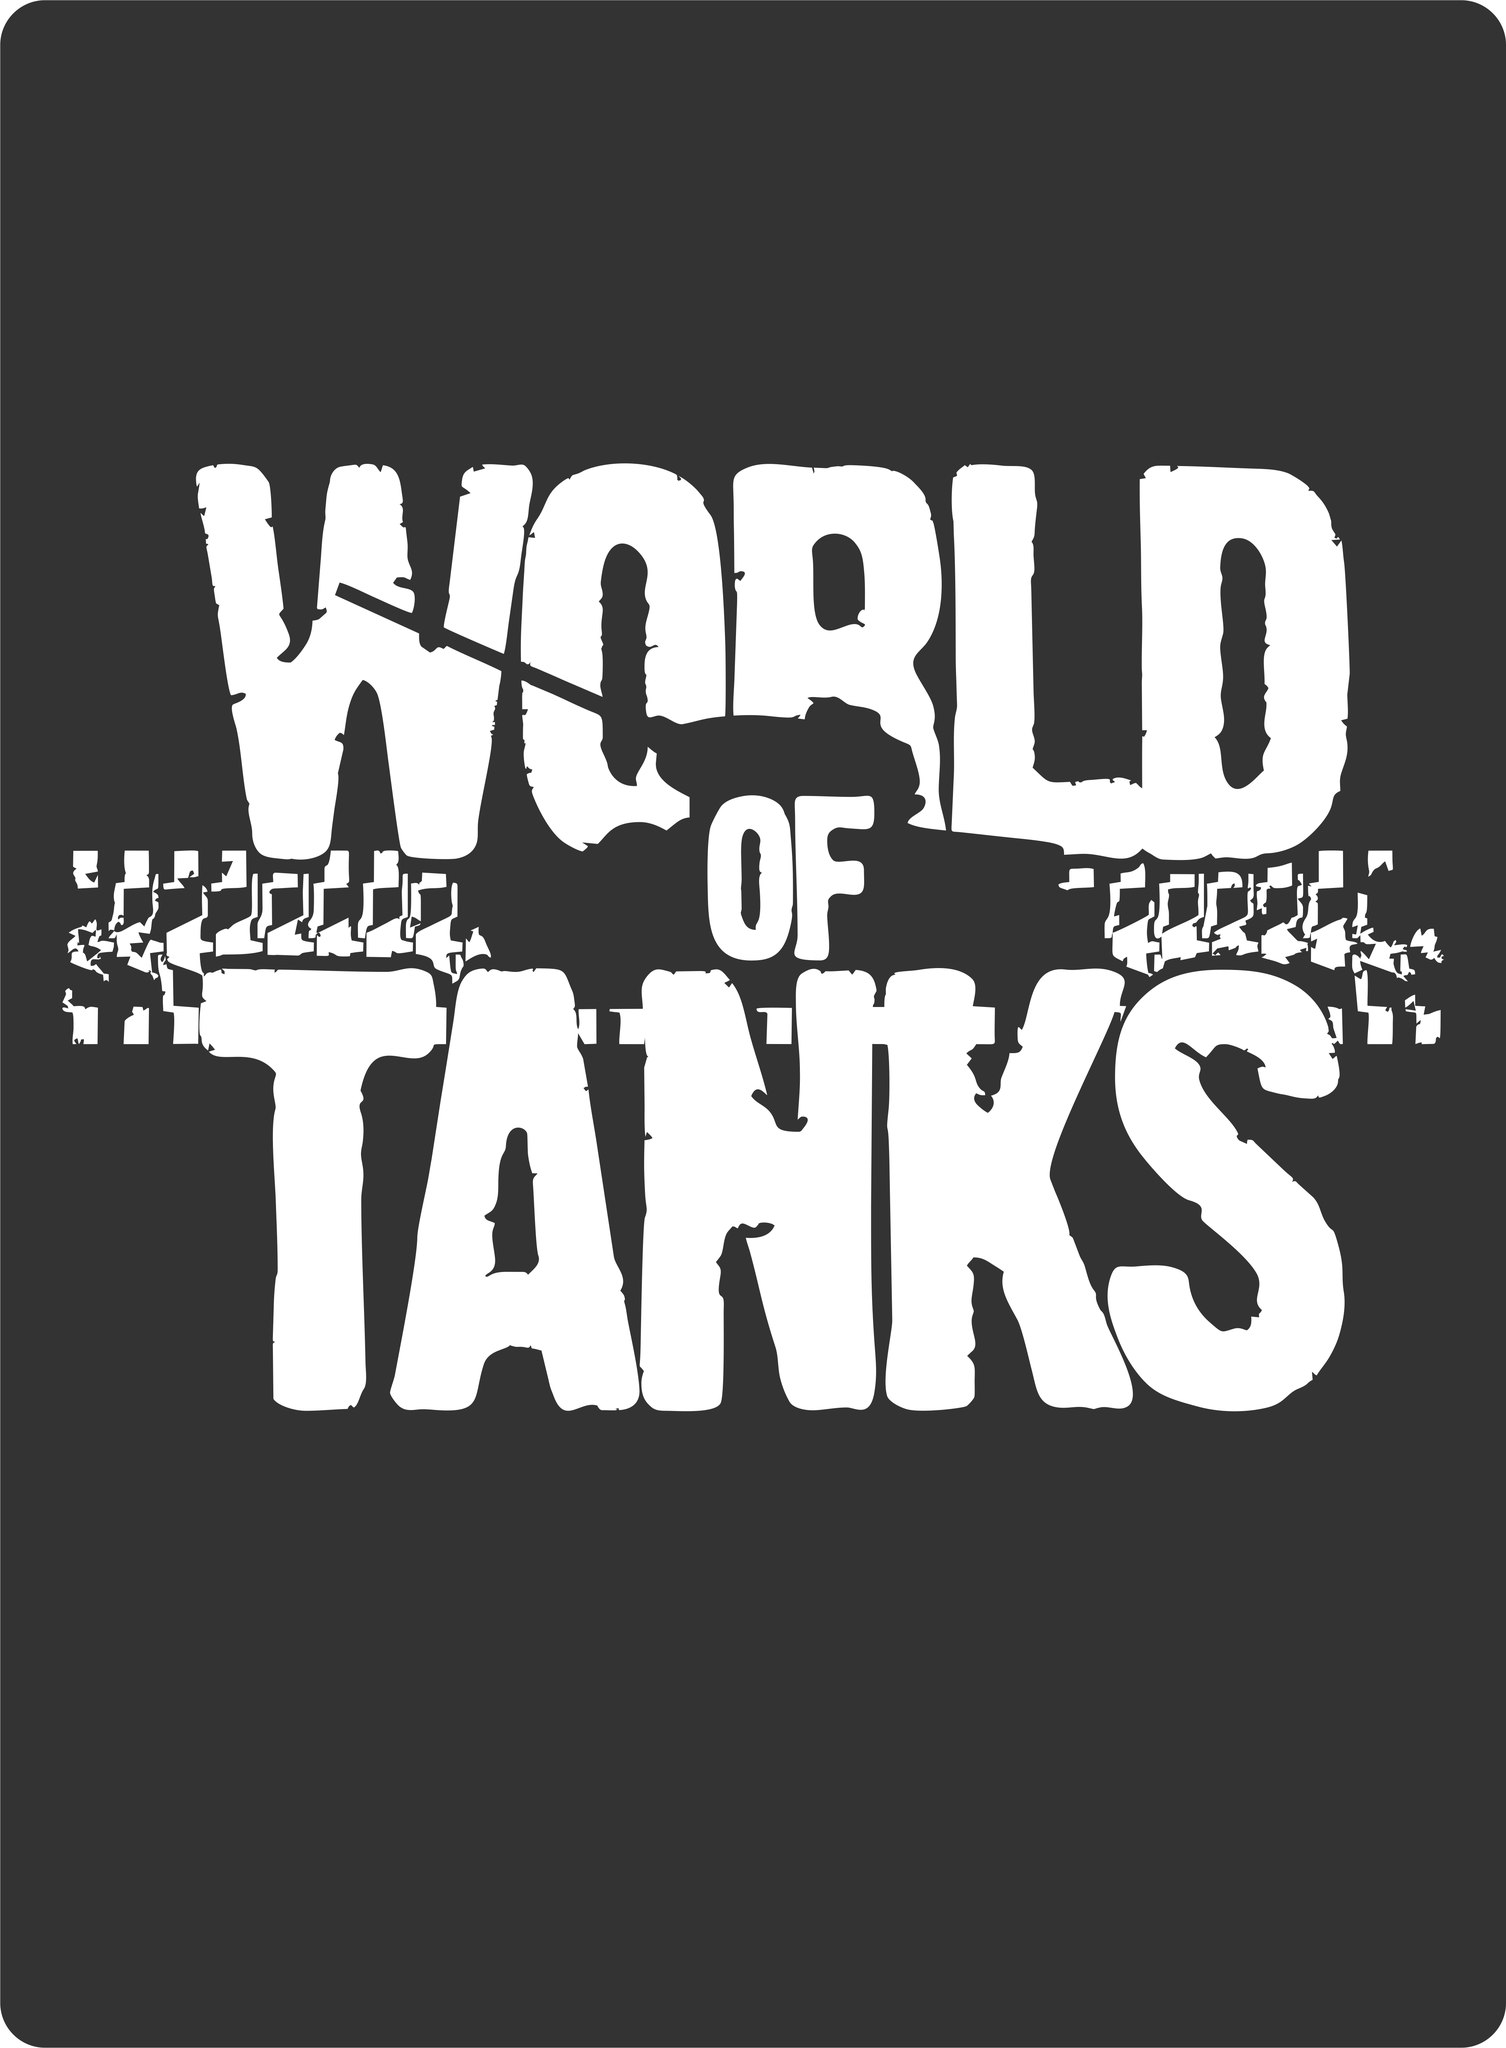 World Of Tanks Stencil Free CDR Vectors Art